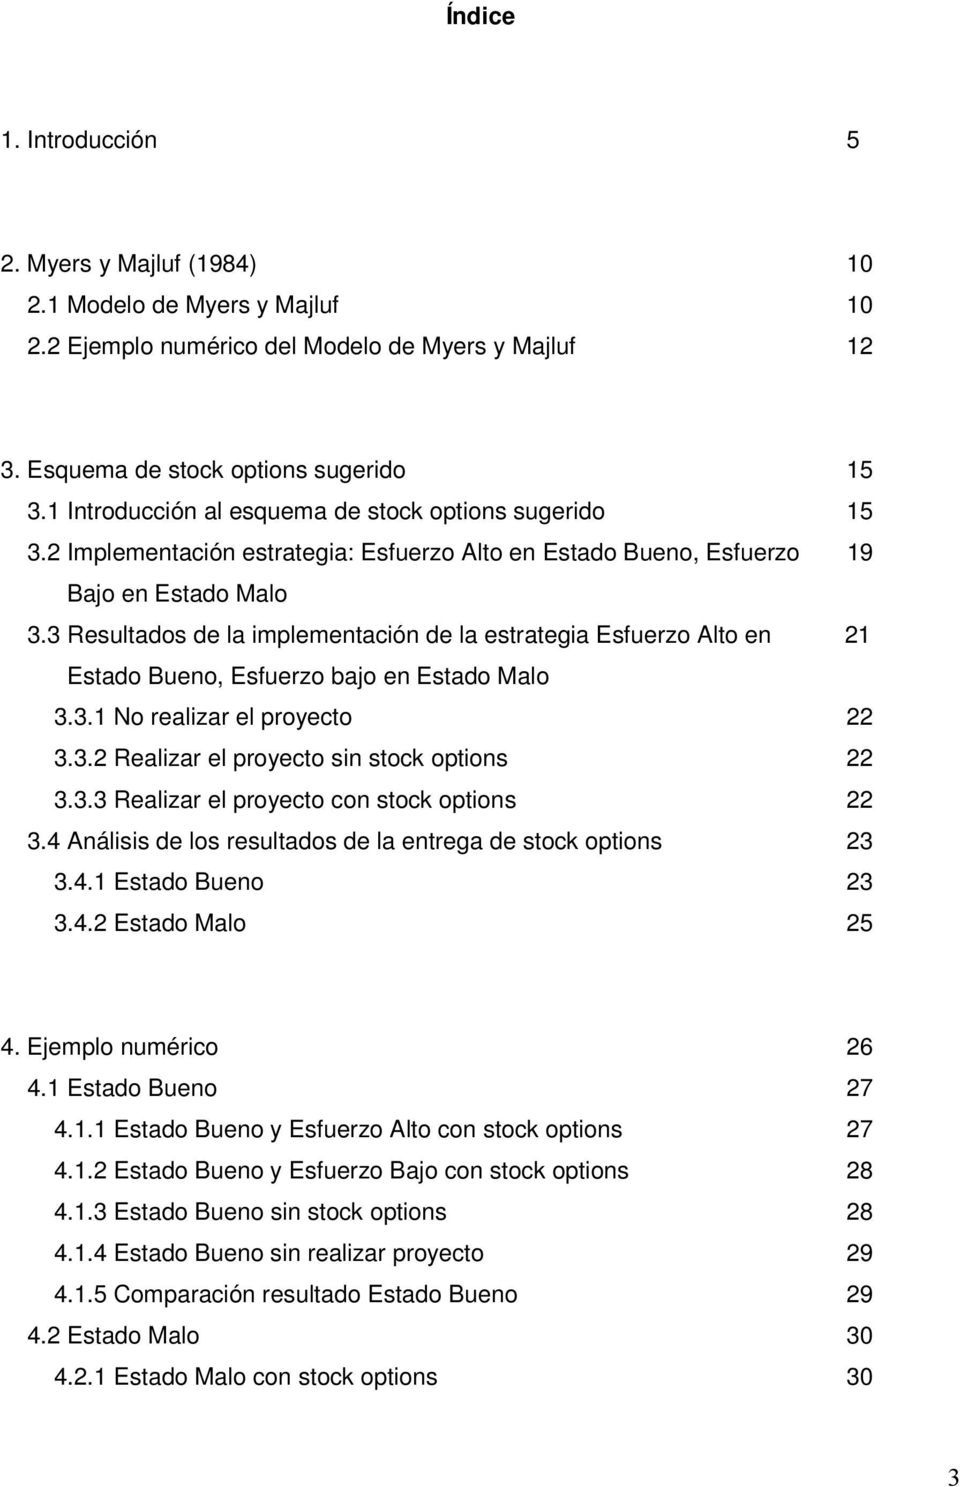 3 Resultados de la implementaión de la estrategia Esfuerzo Alto en 1 Estado ueno Esfuerzo bajo en Estado Malo 3.3.1 No realizar el proyeto 3.3. Realizar el proyeto sin stok options 3.3.3 Realizar el proyeto on stok options 3.